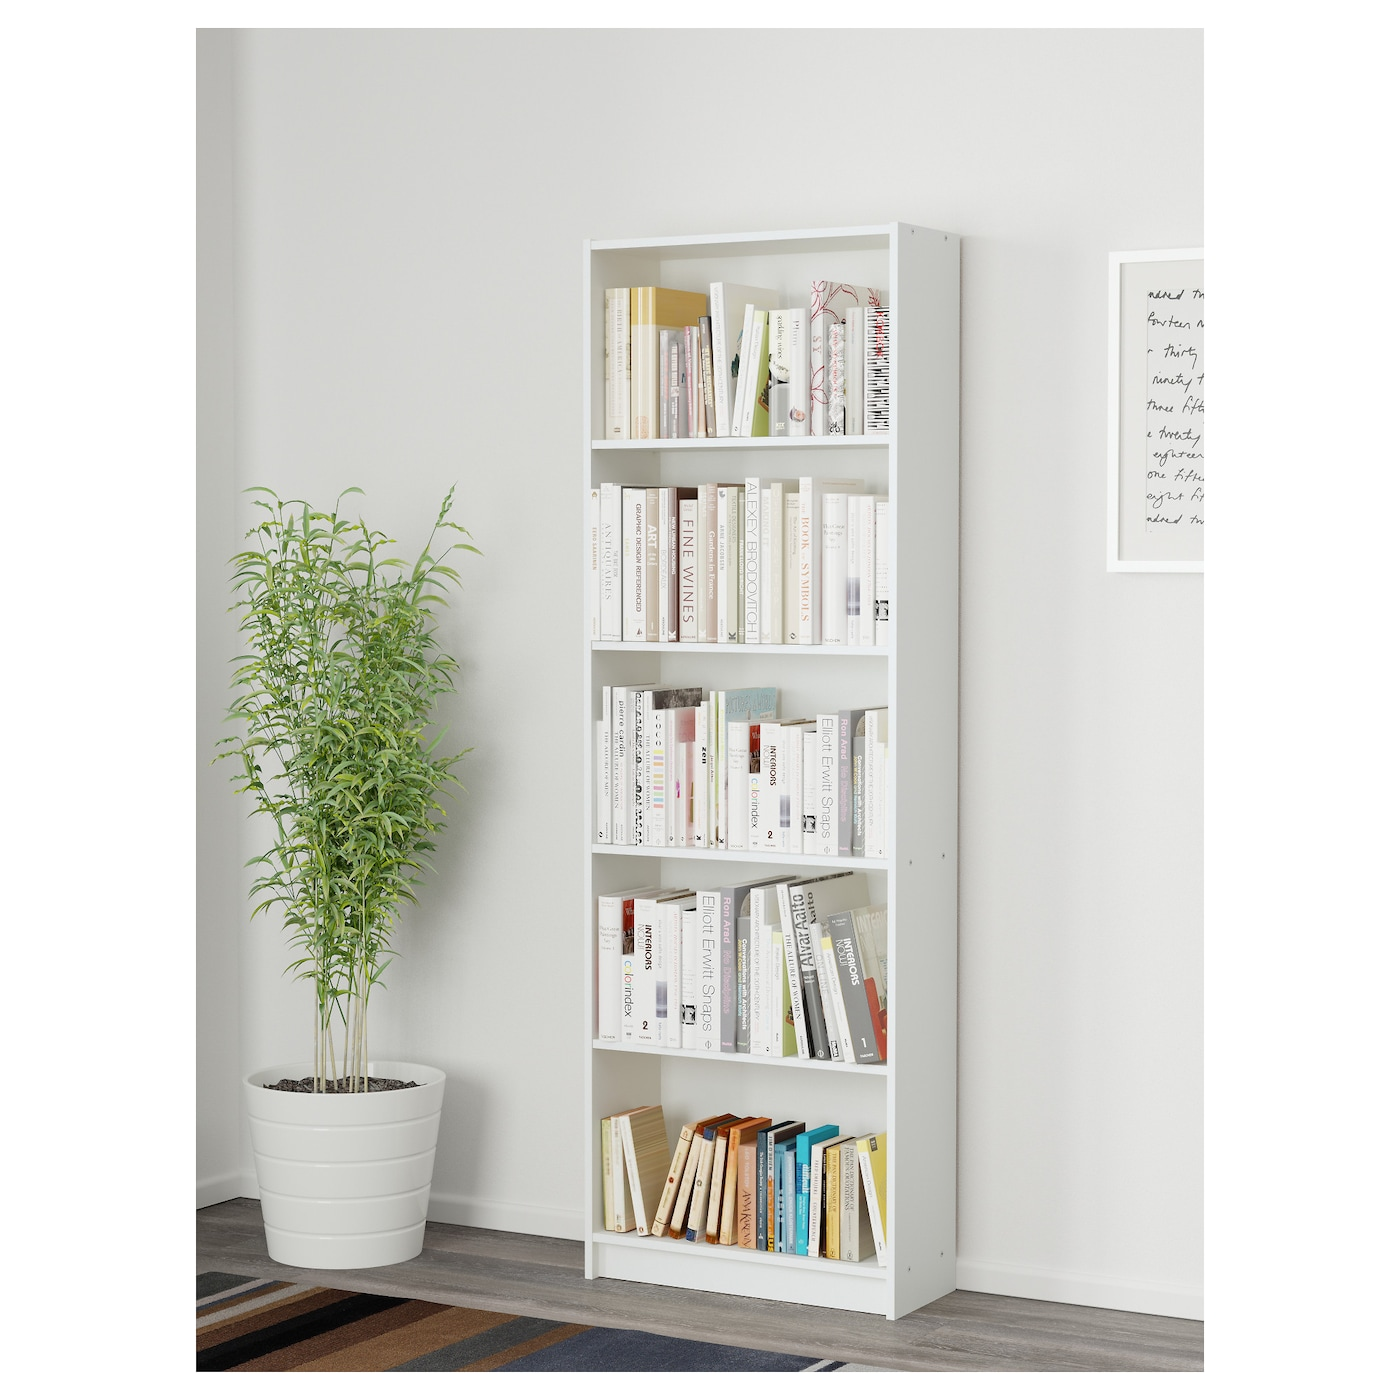 GERSBY bookcase image